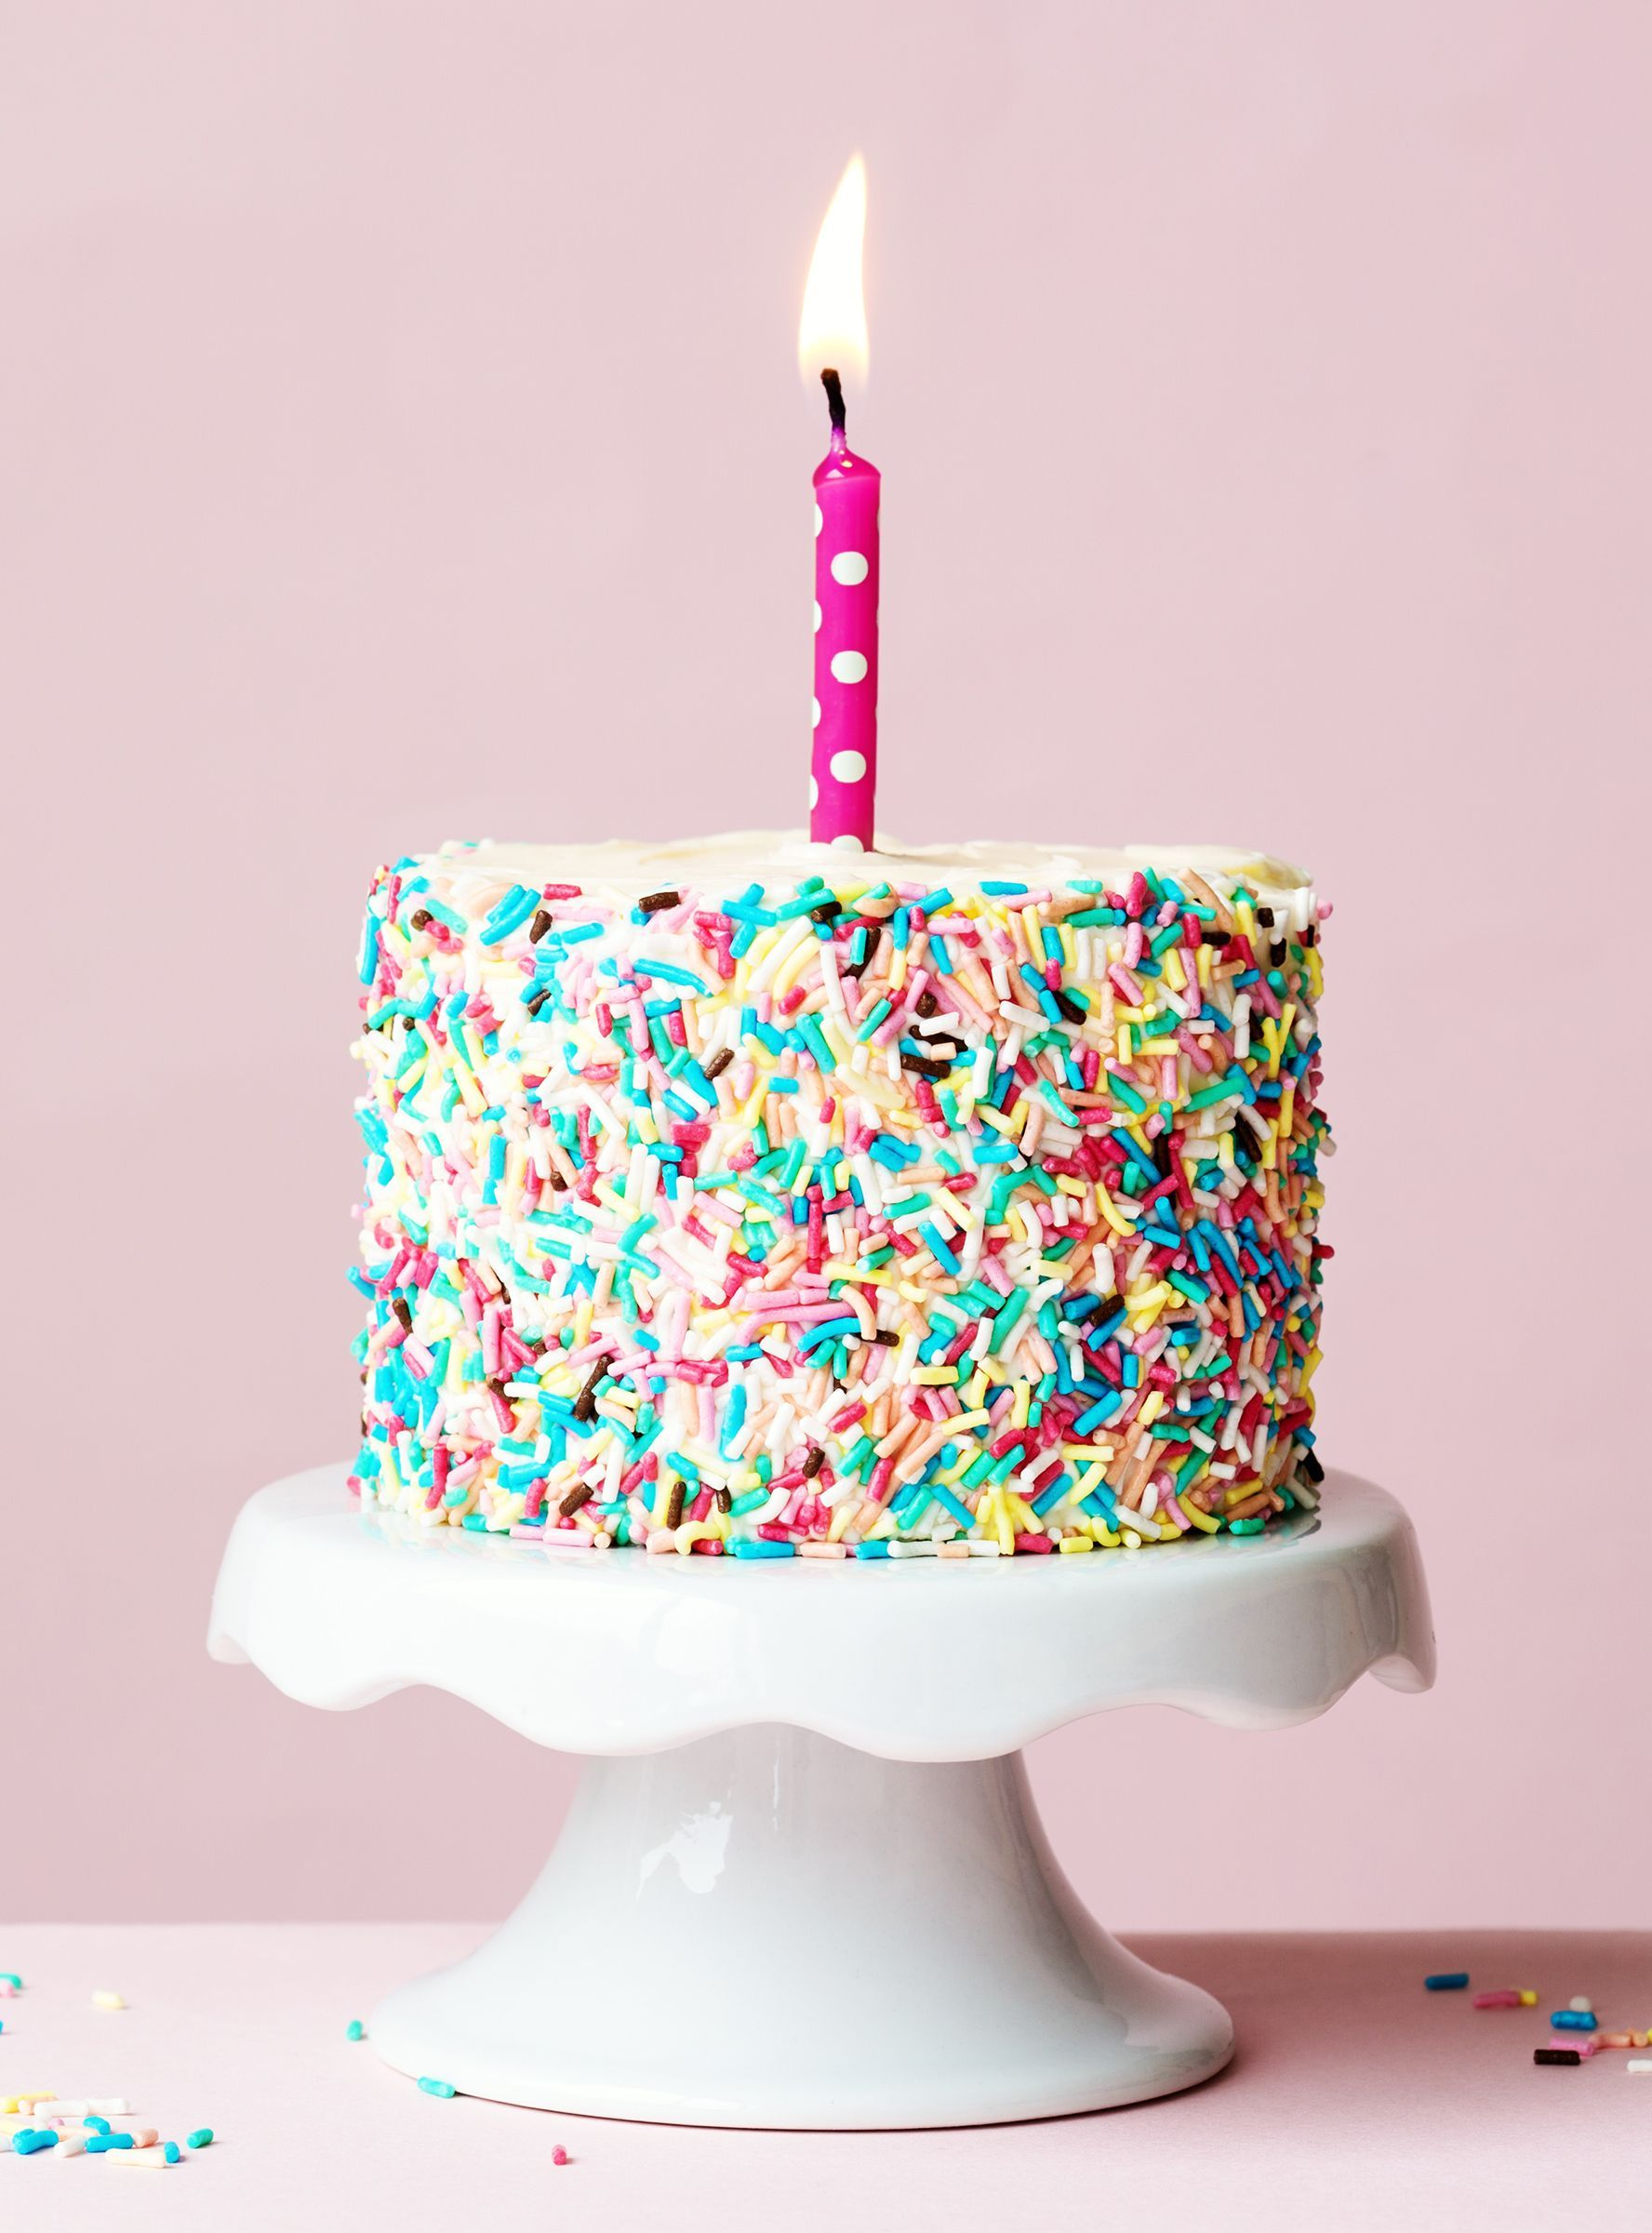 Glossier Just Launched Its Sweetest Product Yet Birthdaycake Candle Lipgloss Beauty